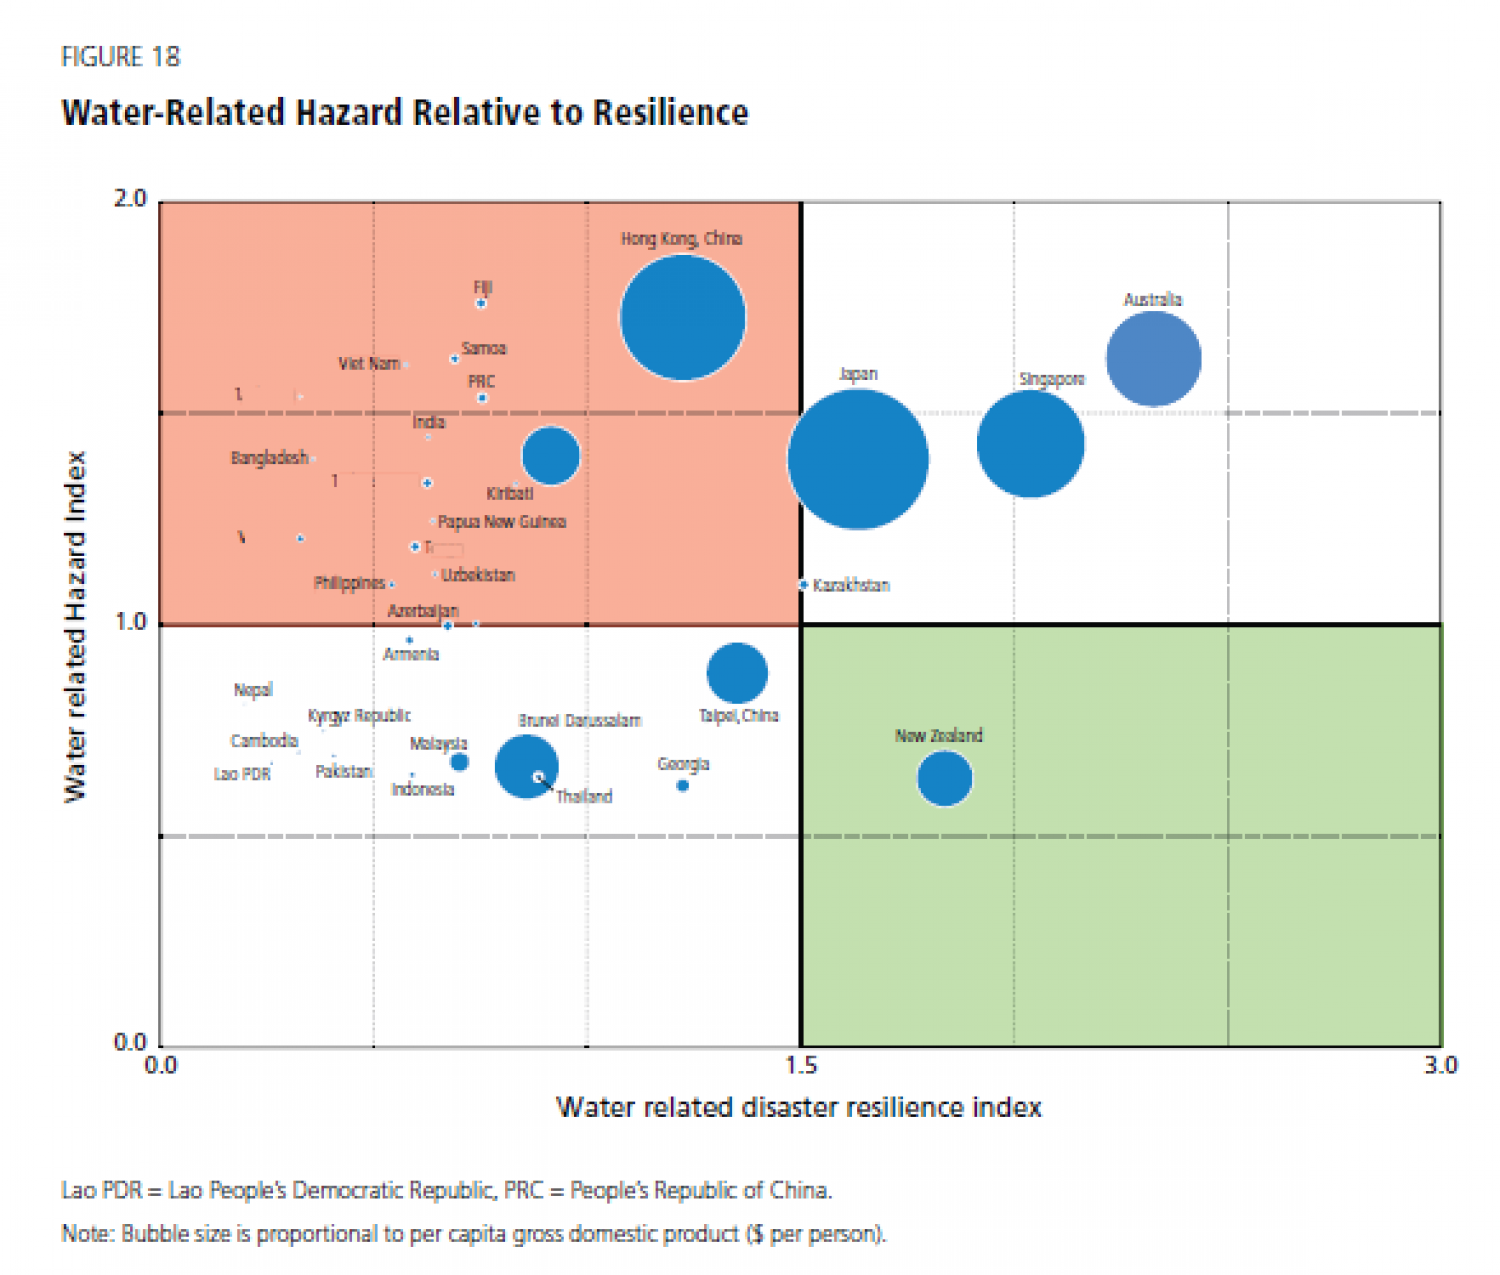 Water-Related Hazard Relative to Resilience Infographic